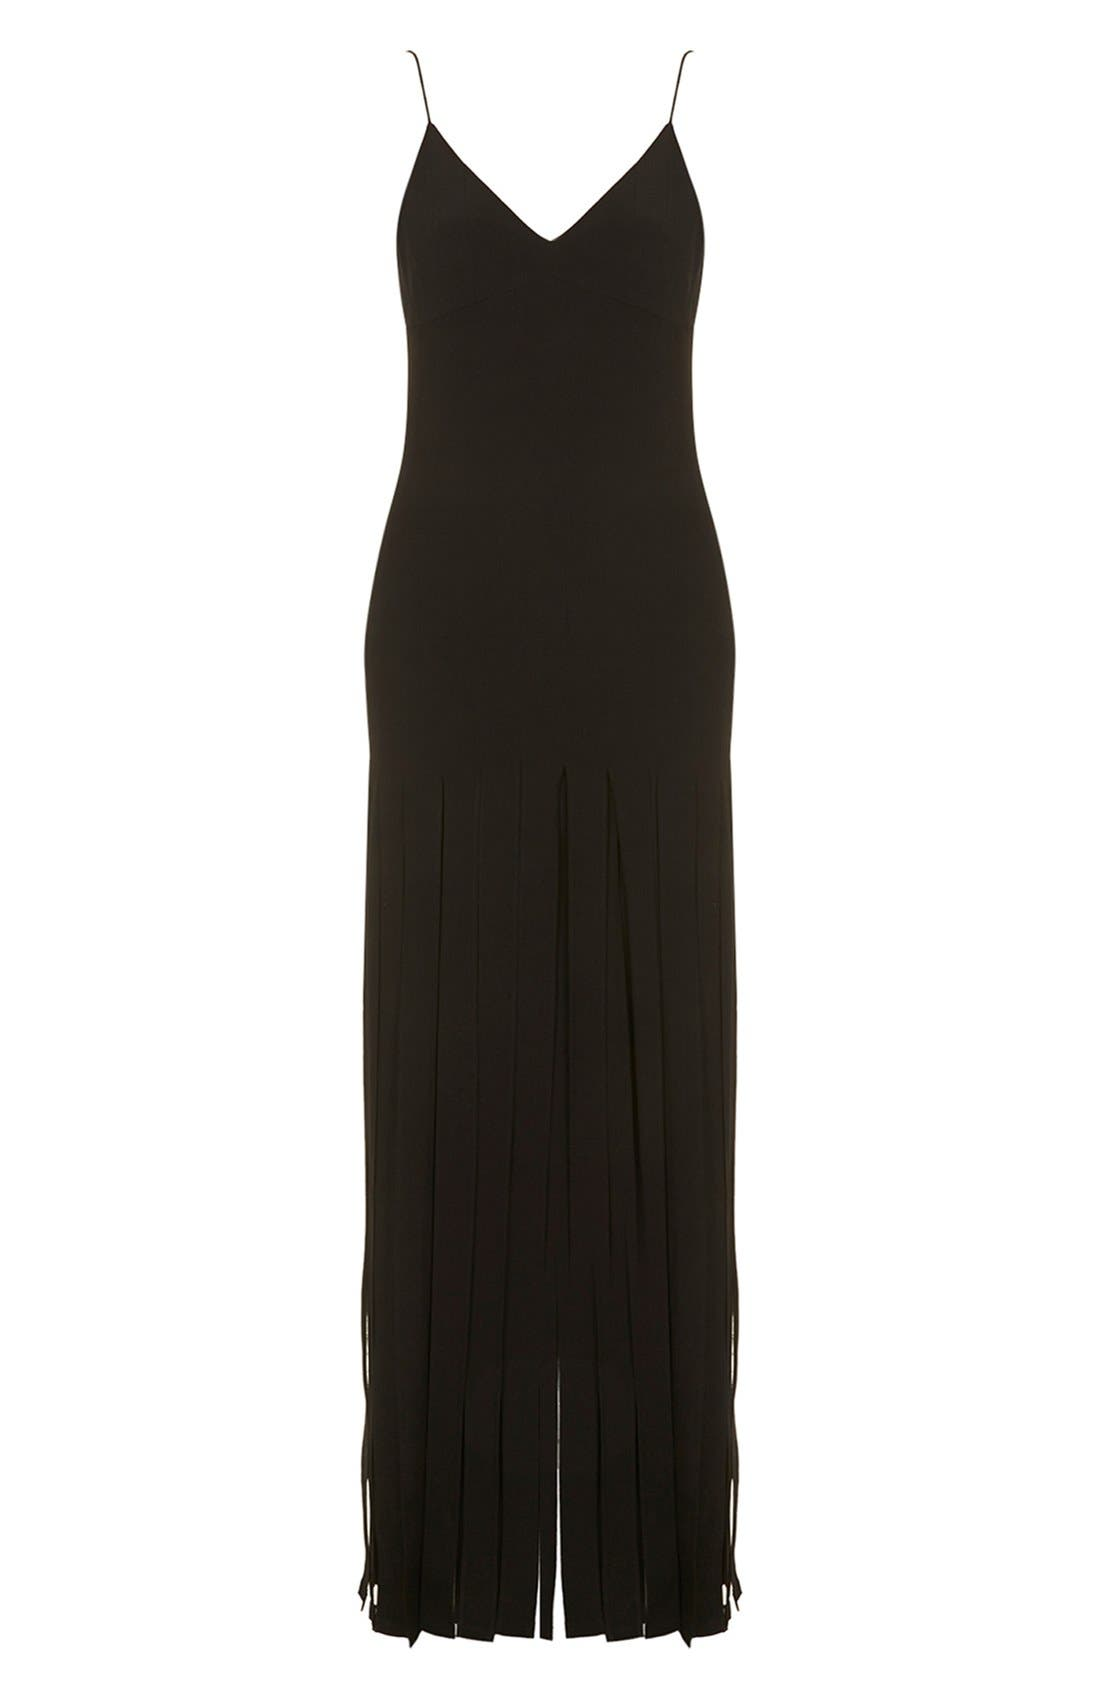 Kate Moss for Topshop Splice Skirt Maxi Dress,                             Alternate thumbnail 10, color,